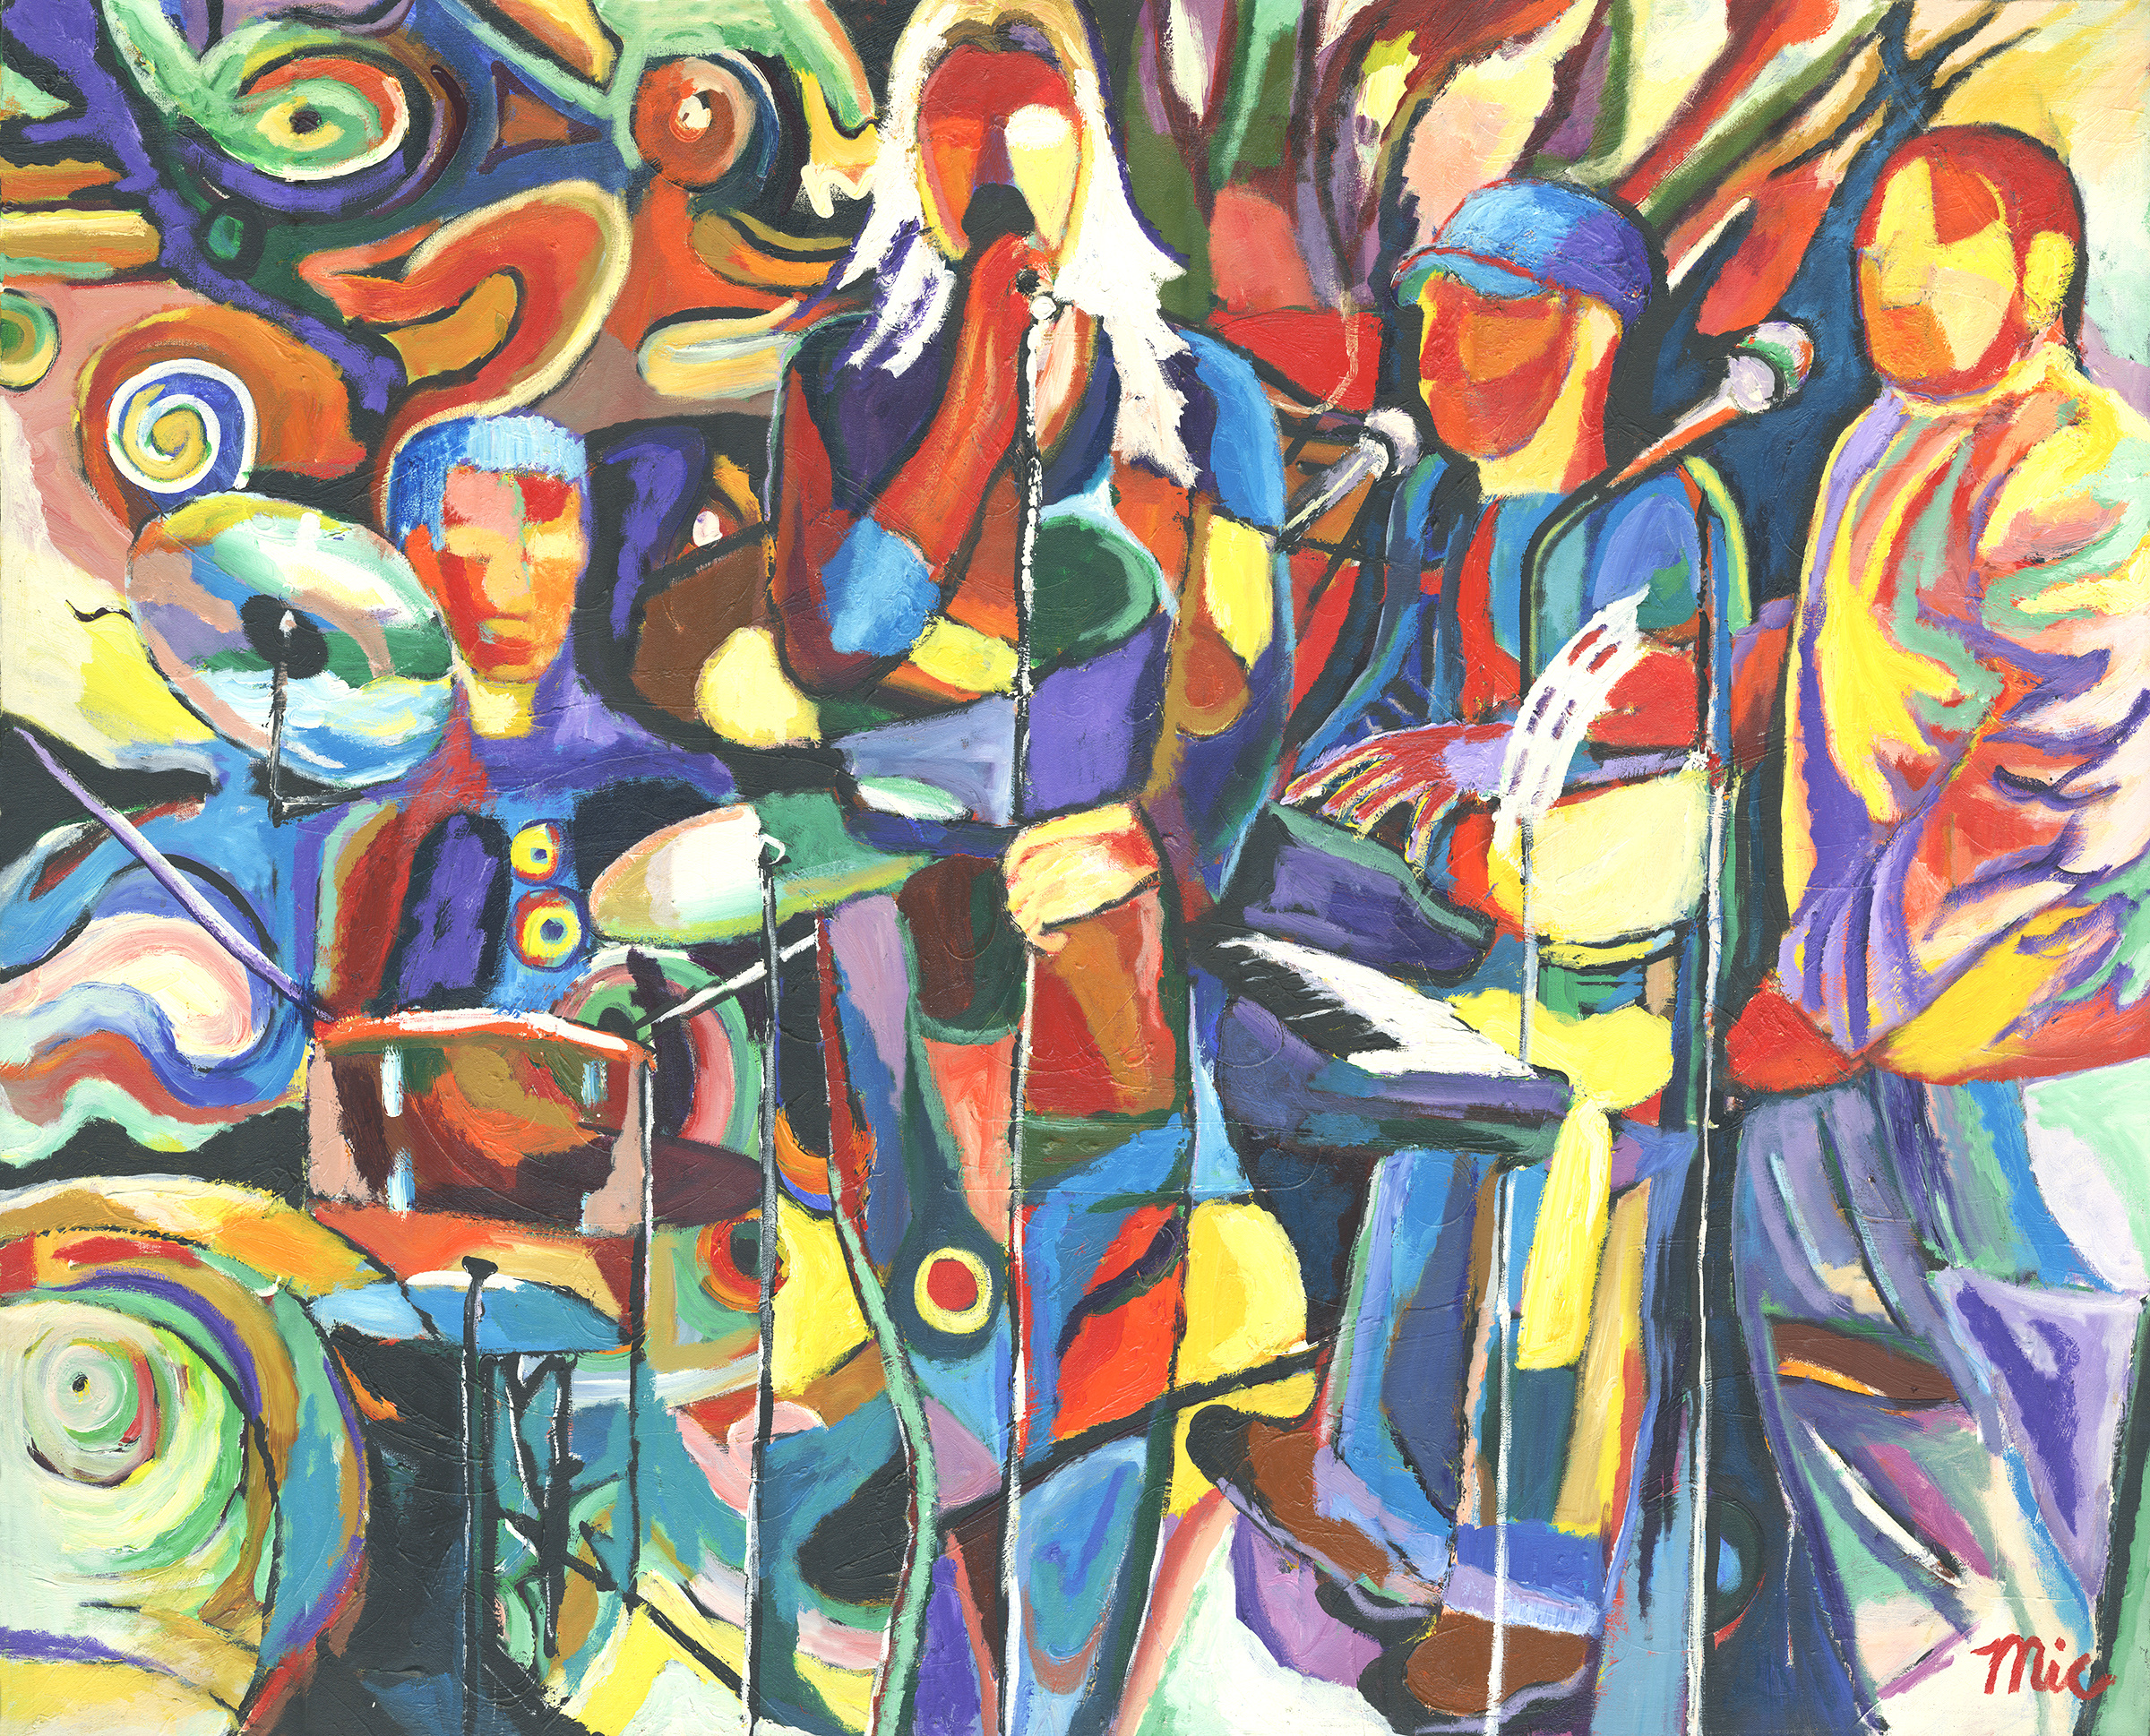 """Abstract Red Jazz - Acrylic on Canvas 48"""" x 60"""" $4000Giclee Limited Edition and canvas prints are available. Please visit the prints gallery."""